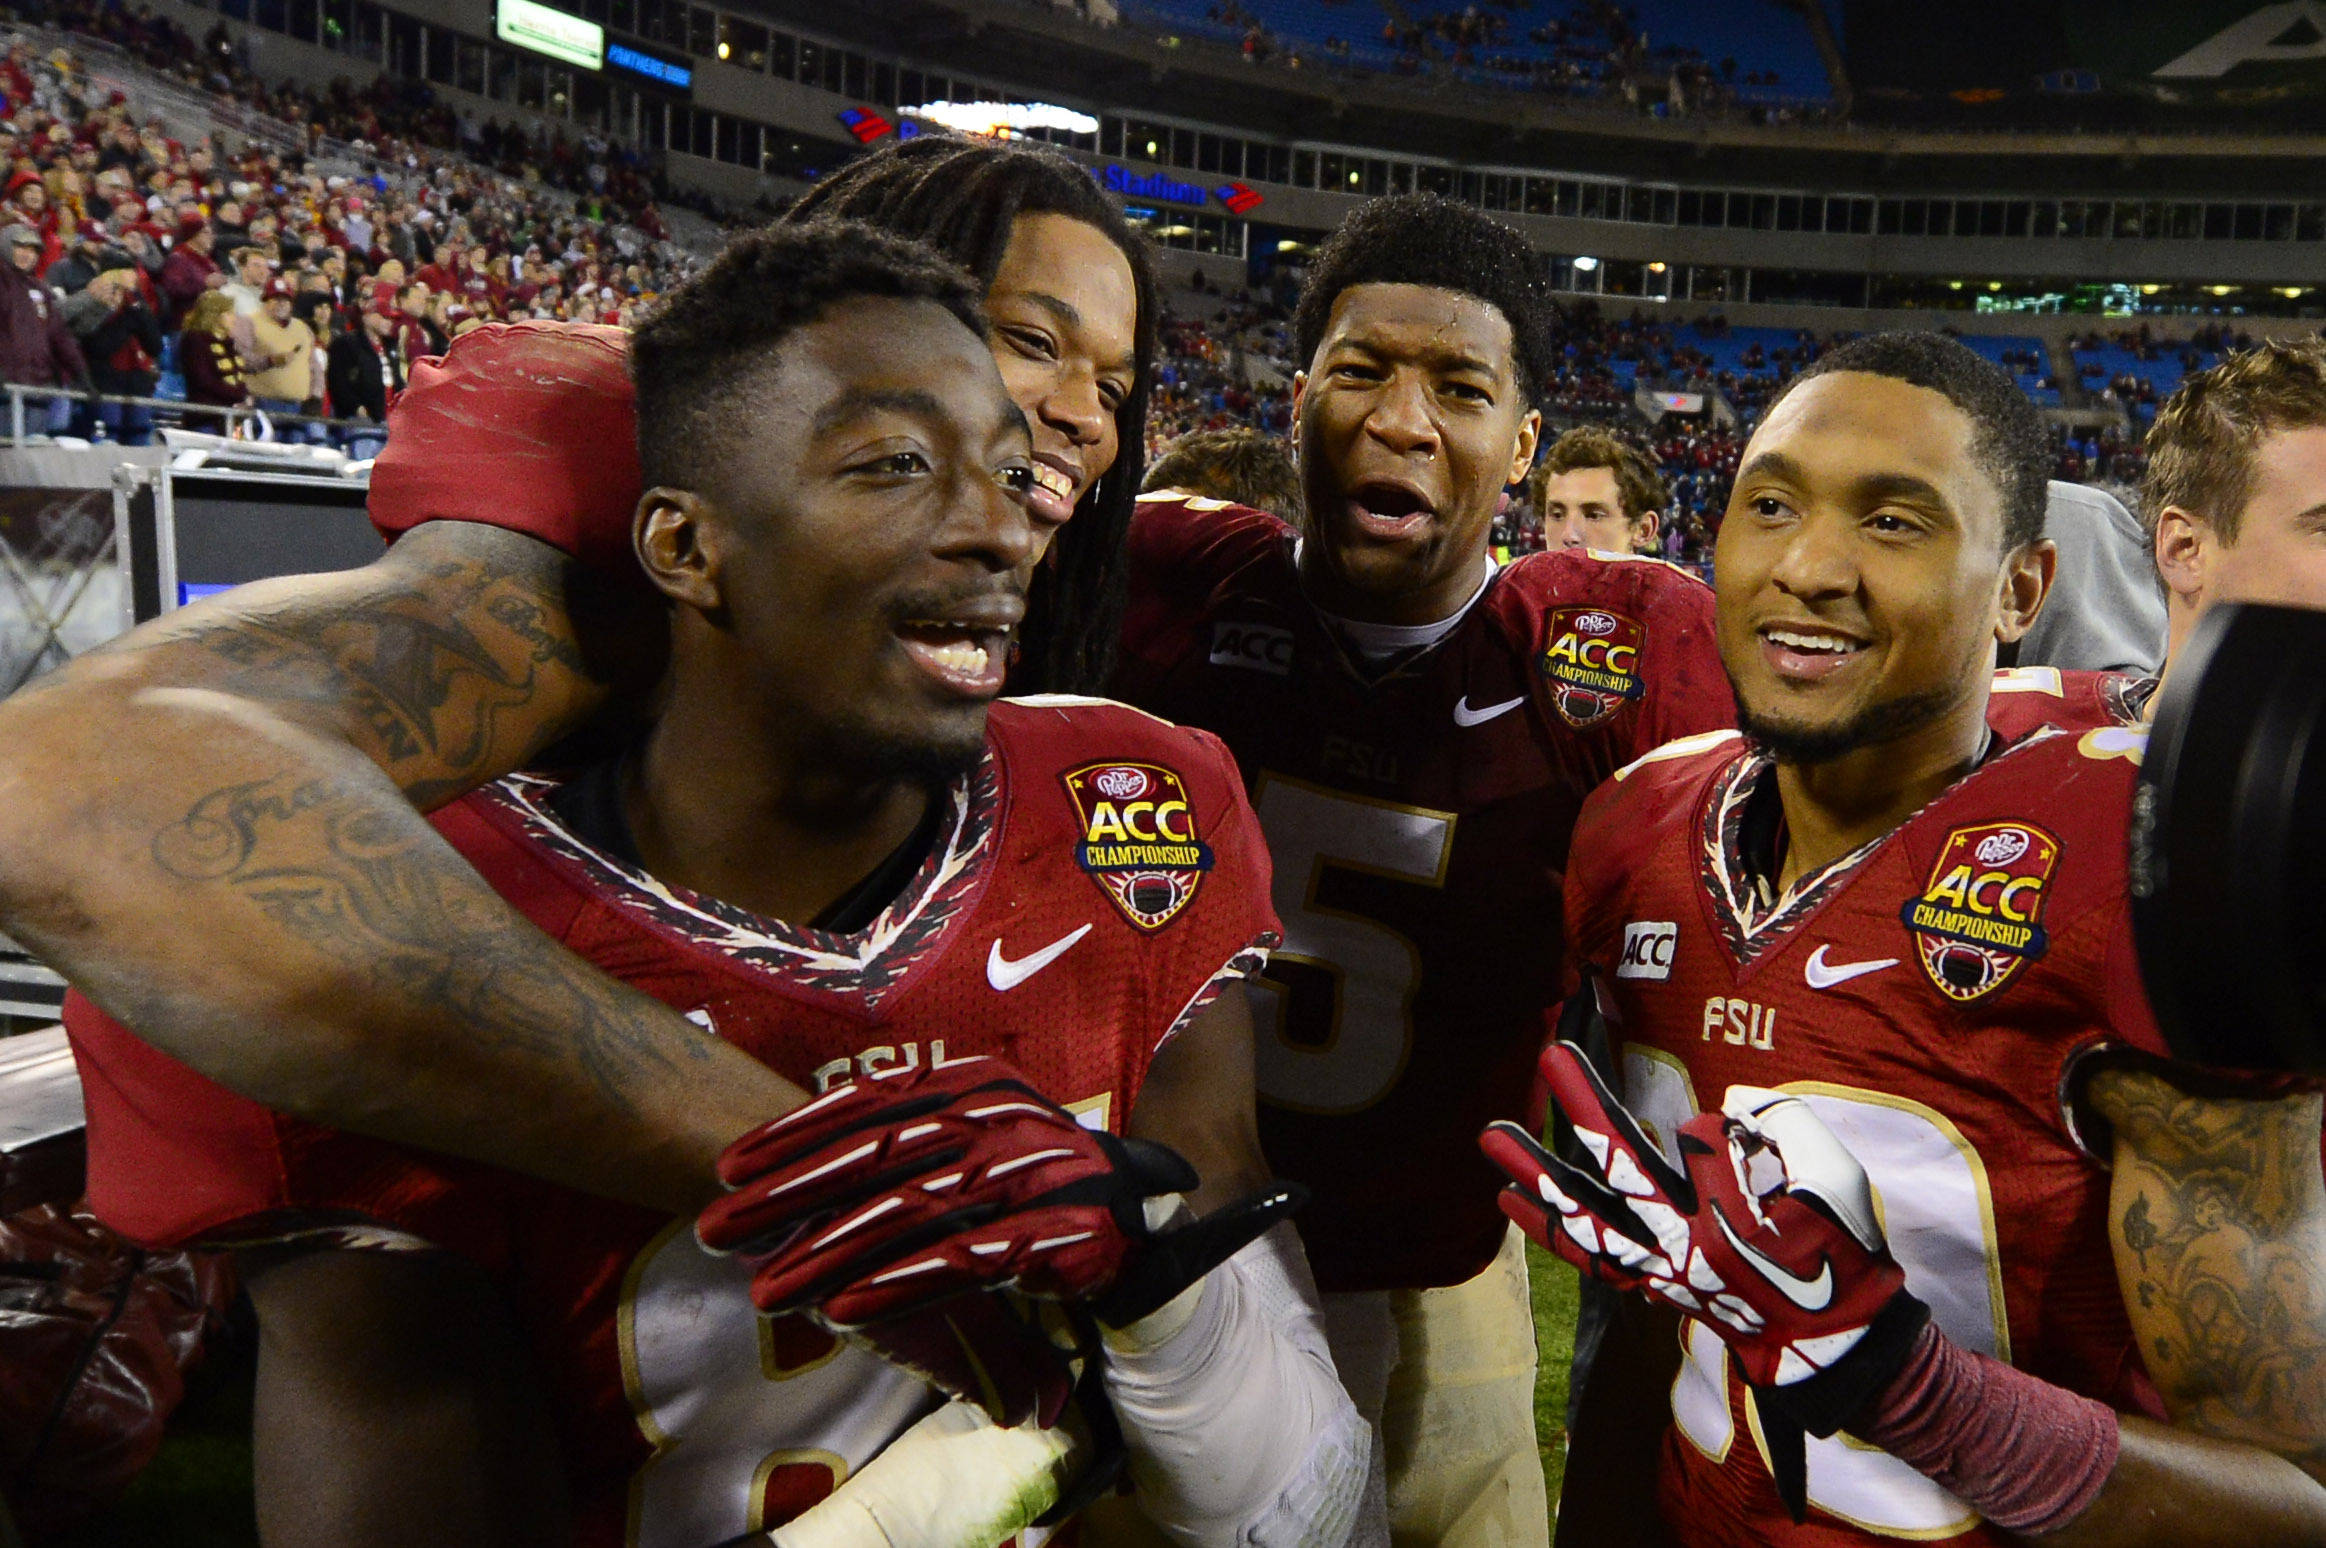 Dec 7, 2013; Charlotte, NC, USA; Florida State Seminoles wide receivers Kenny Shaw (81) and Kelvin Benjamin (1) and quarterback Jameis Winston (5) and  wide receiver Rashad Greene (80) react at the end of the game. The Seminoles defeated the Blue Devils 45-7 at Bank of America Stadium. Mandatory Credit: Bob Donnan-USA TODAY Sports